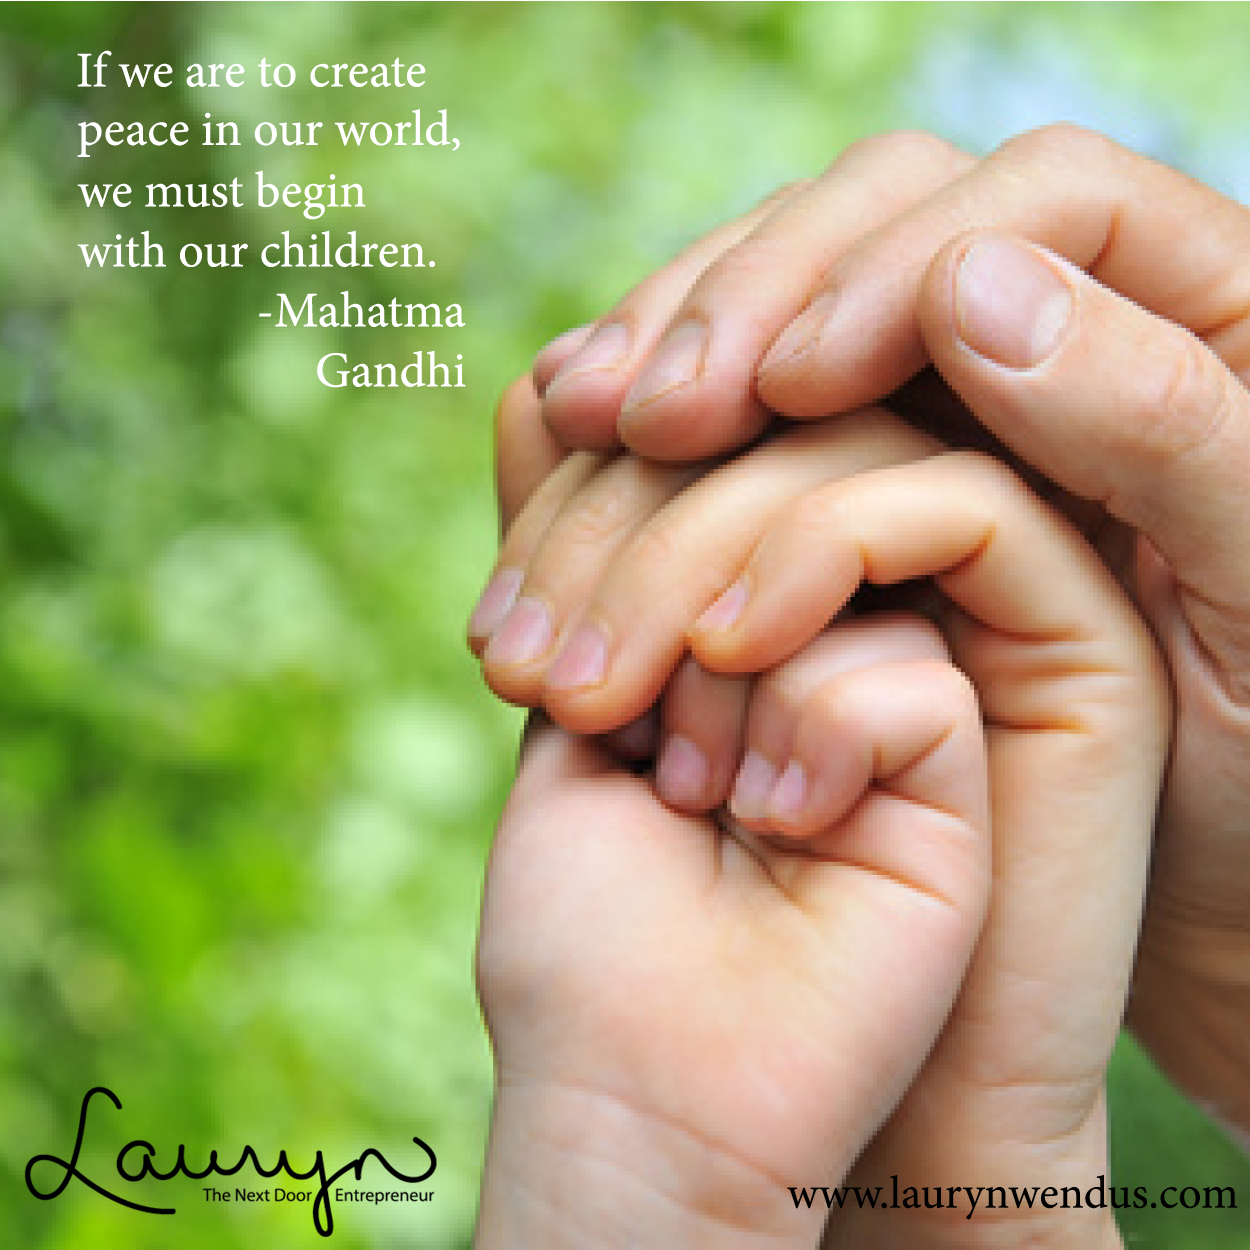 """""""If we are to create peace in our world, we must begin with our children."""" -Mahatma Gandhi #worldpeaceday #quotes"""